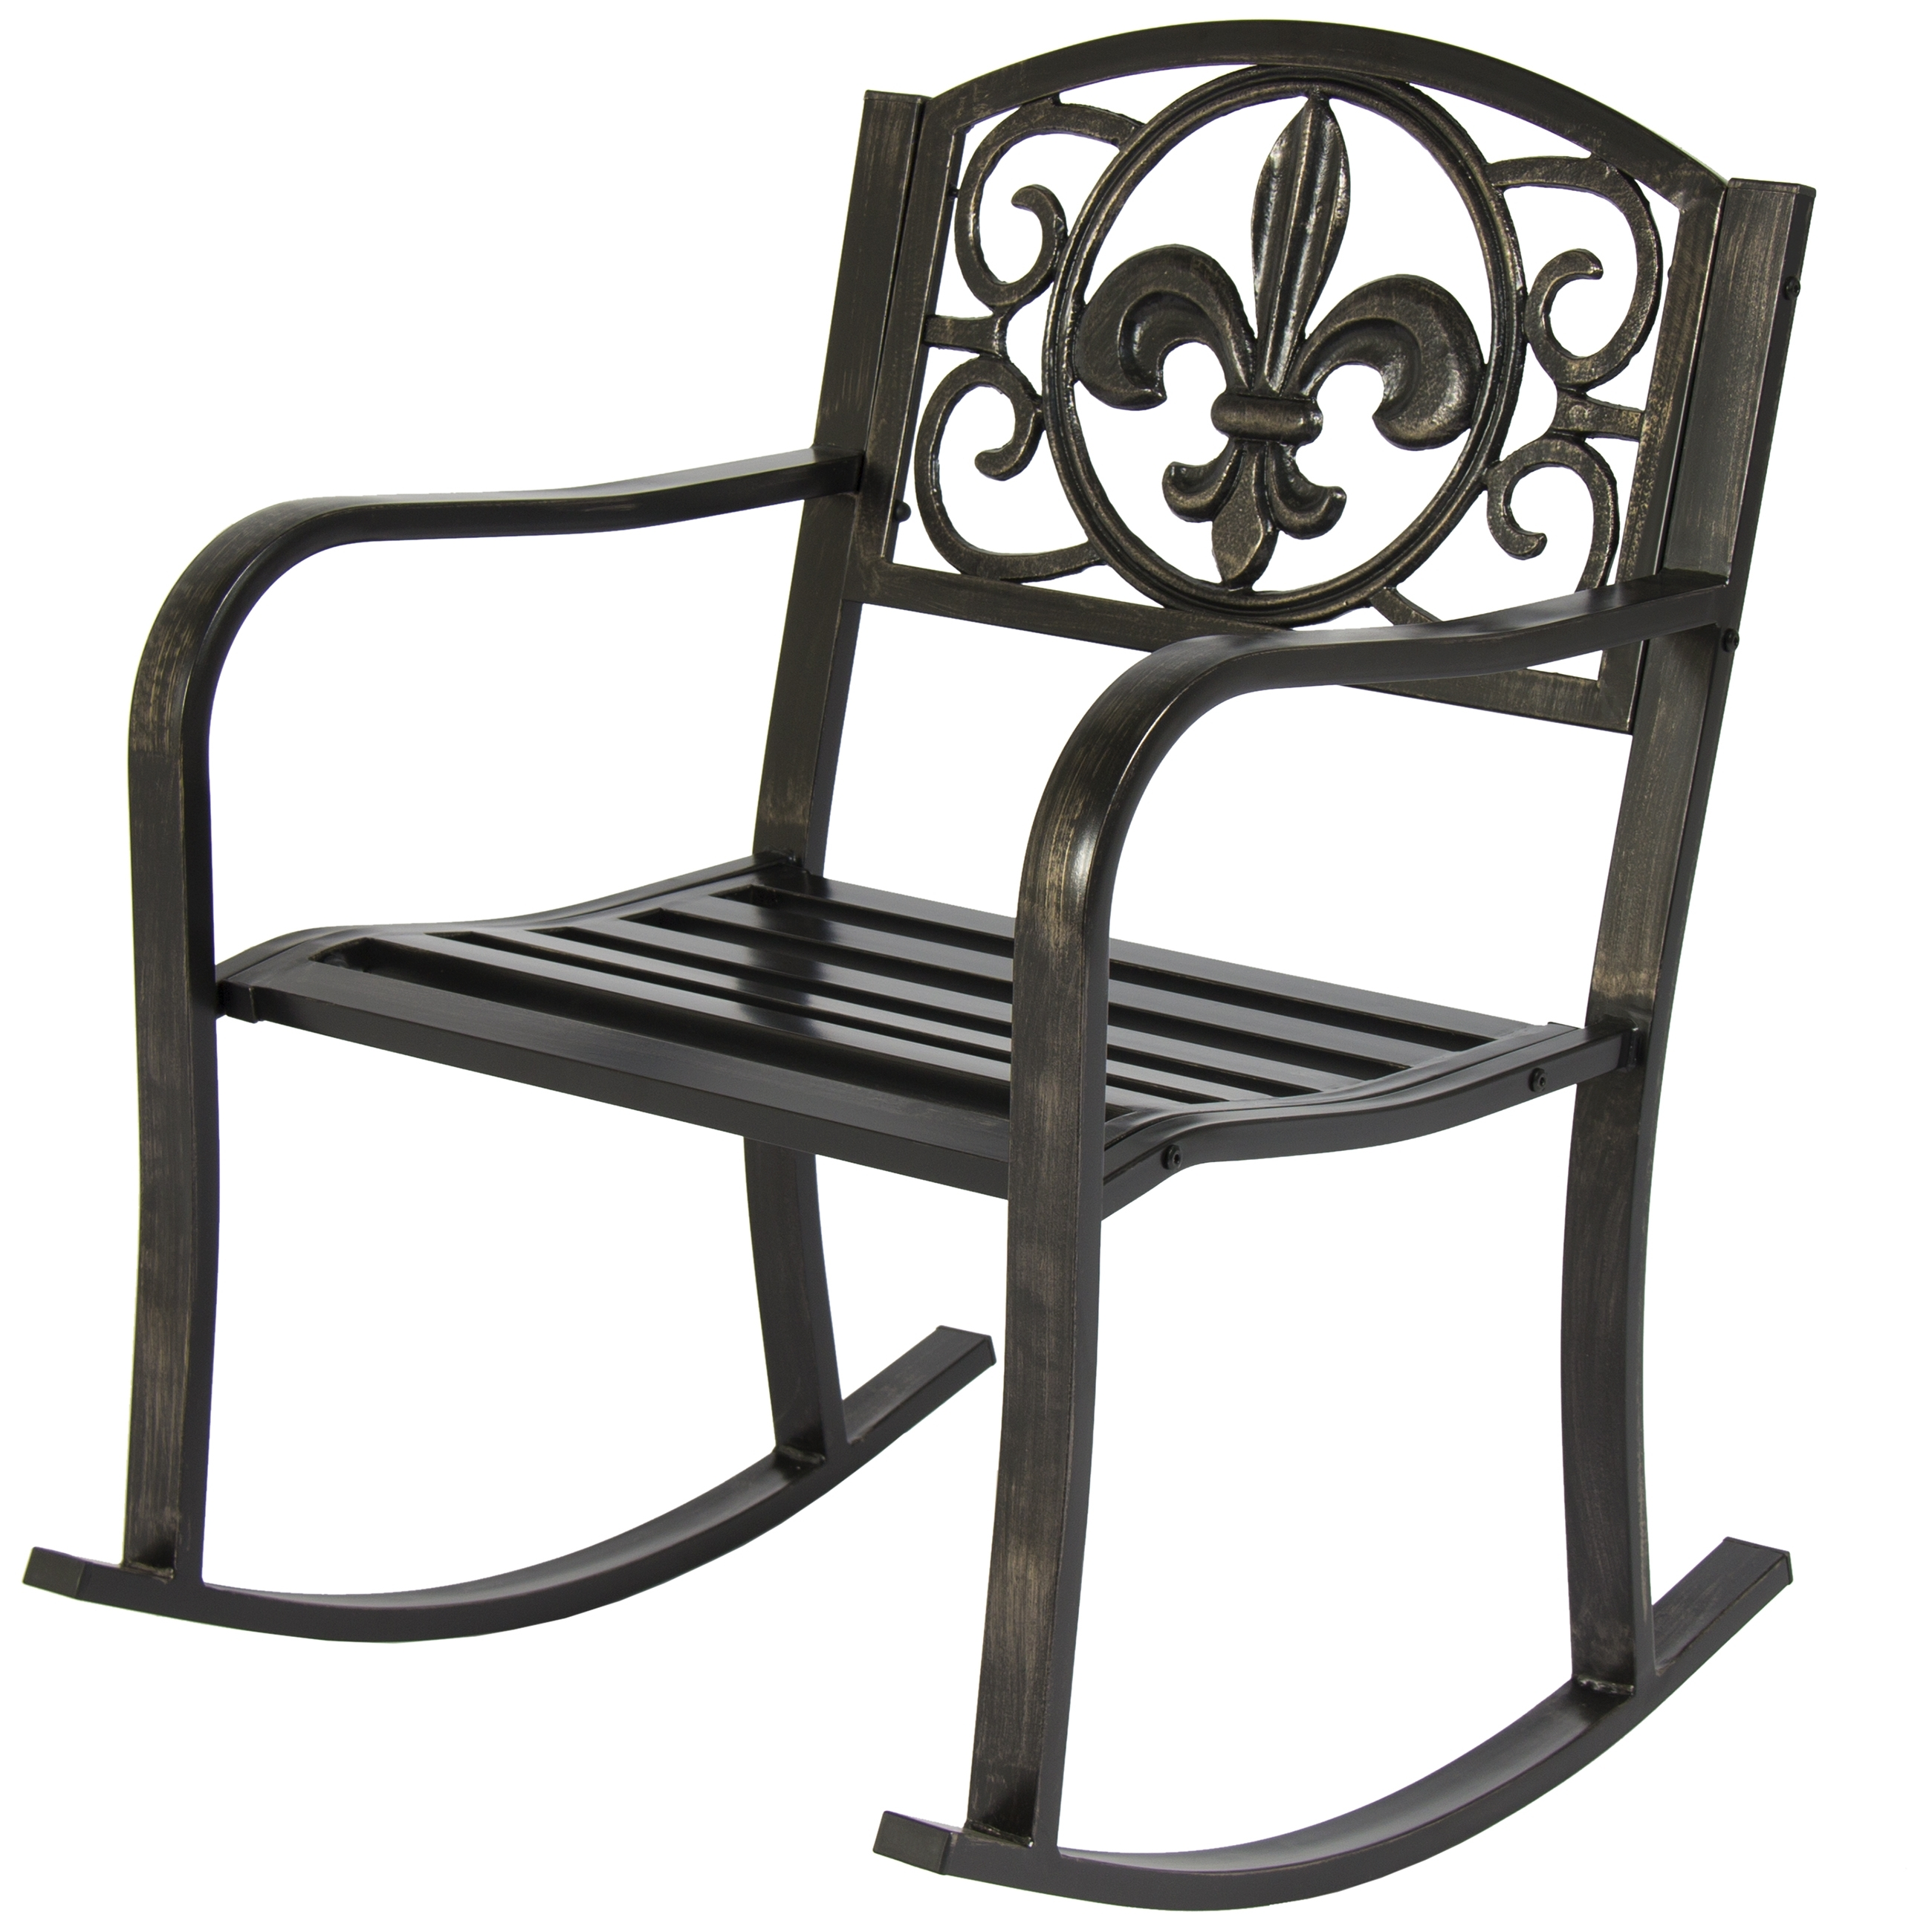 Best Choice Products Metal Rocking Chair Seat For Patio, Porch, Deck Inside Most Current Black Rocking Chairs (View 14 of 15)